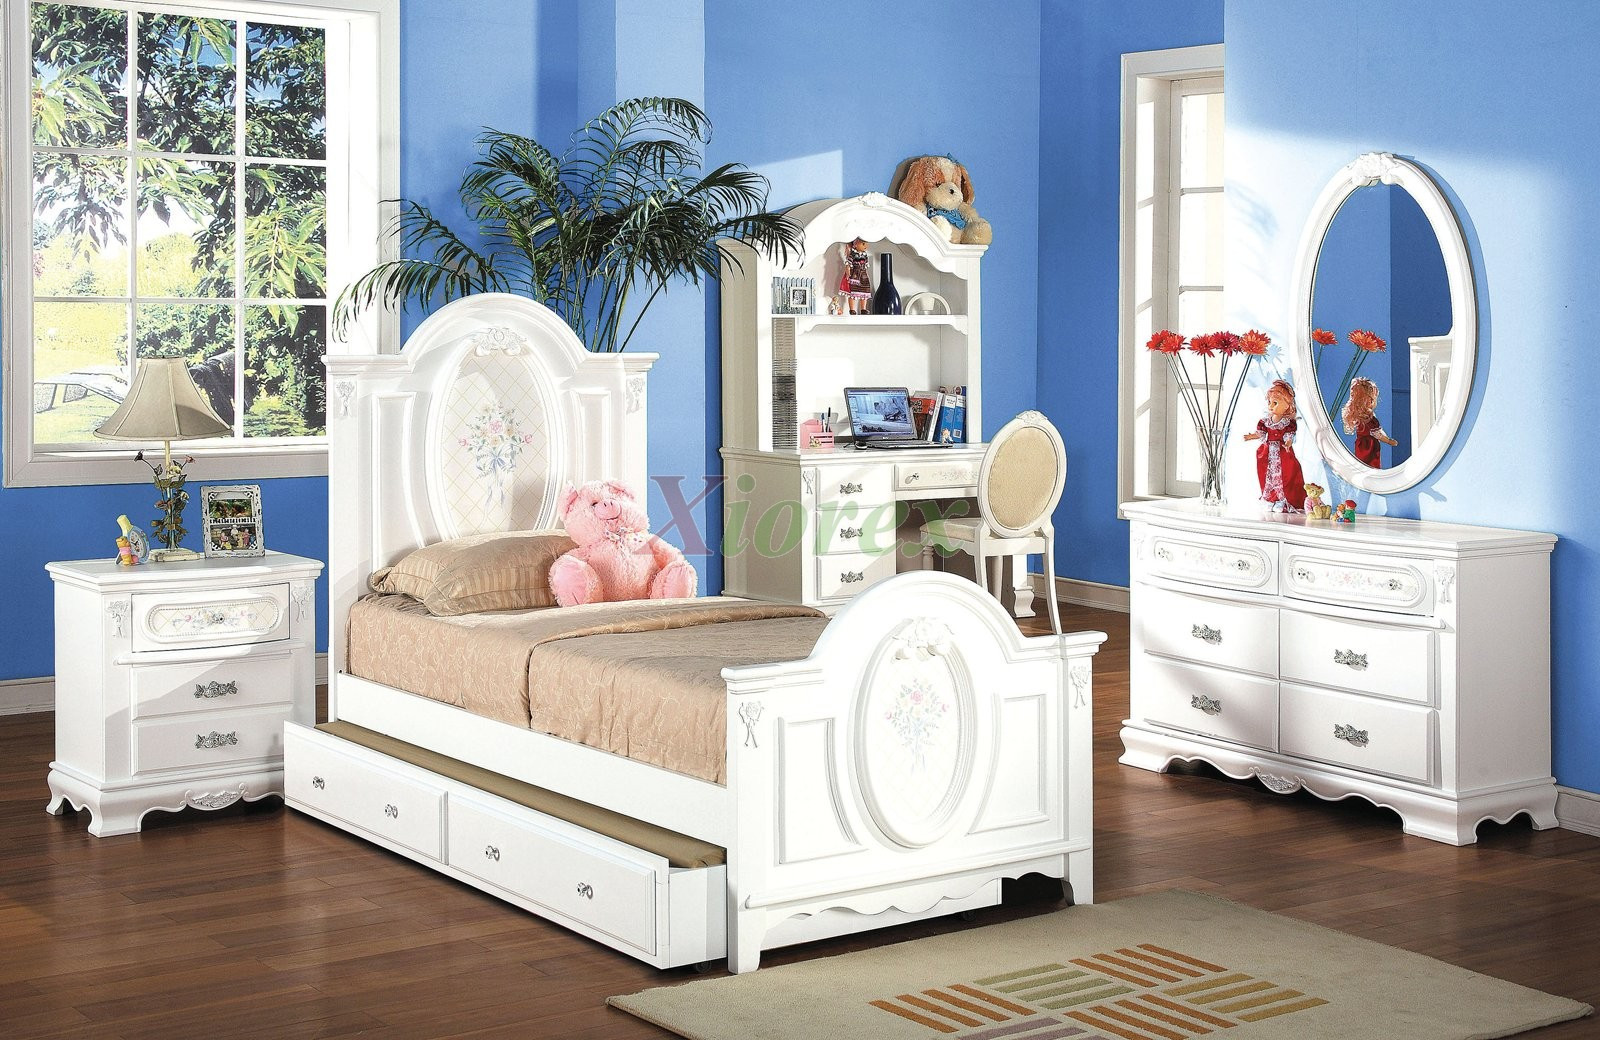 Best ideas about Kid Bedroom Sets . Save or Pin What to consider in kids bedroom furniture sets – BlogBeen Now.